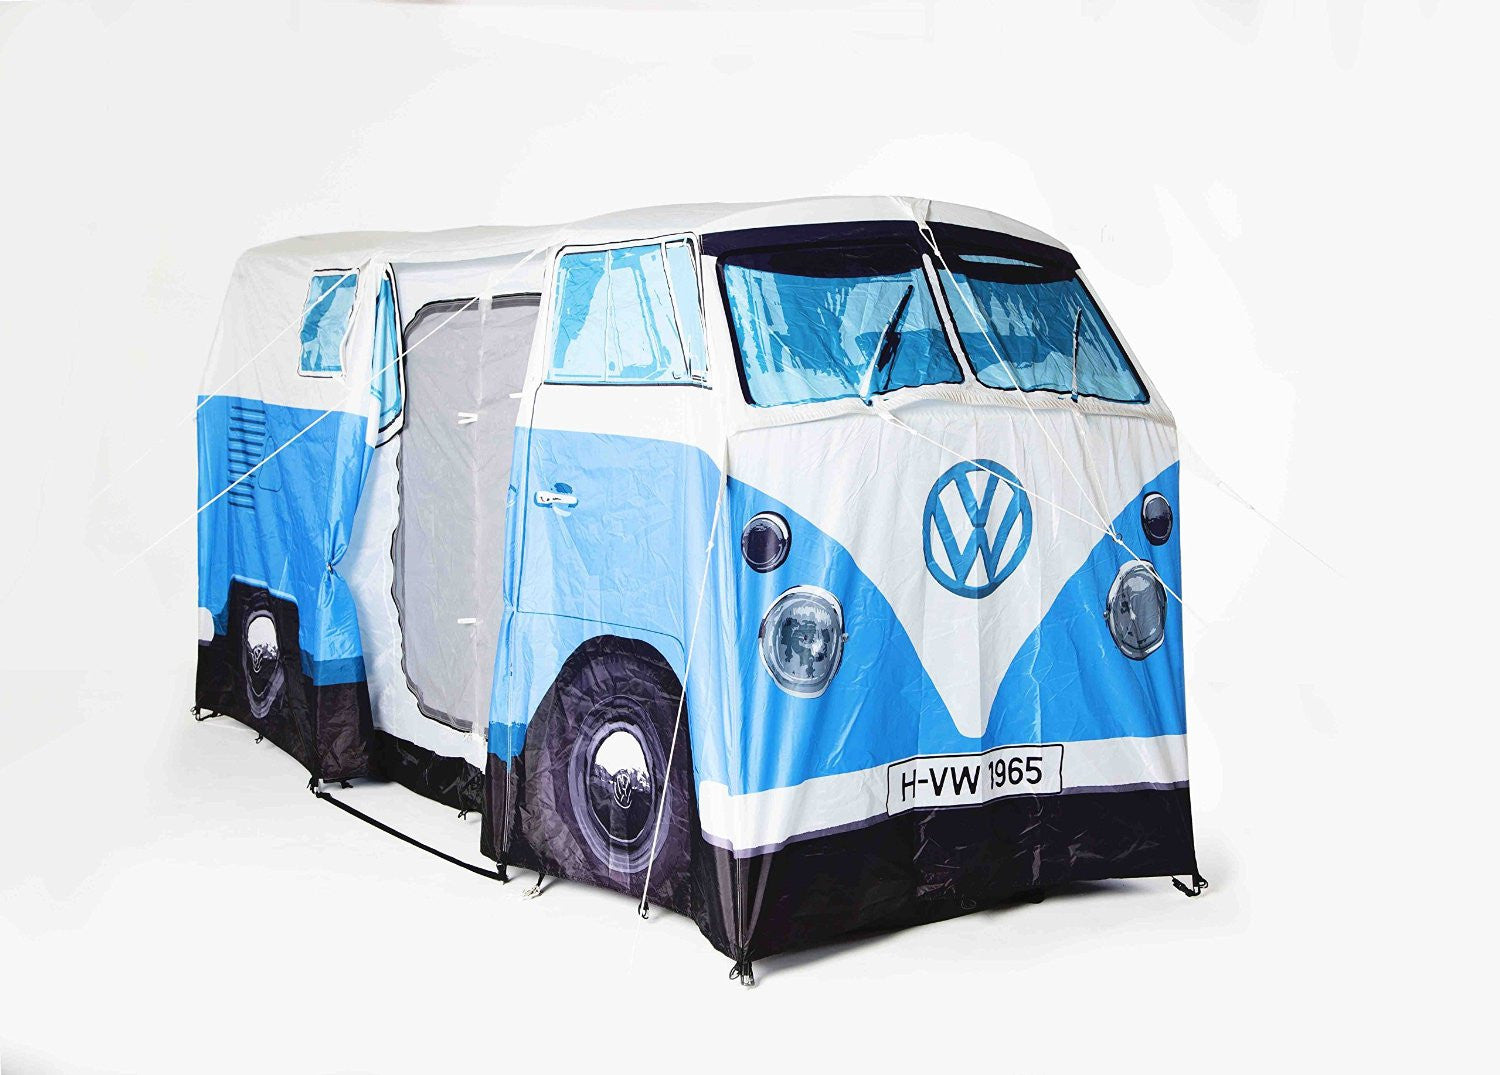 Volkswagen Bus Adult Tent-Blue - Cool VW Stuff - 12 & Volkswagen Bus Campervan Full Size Tent-Blue by Monster Factory VWB1